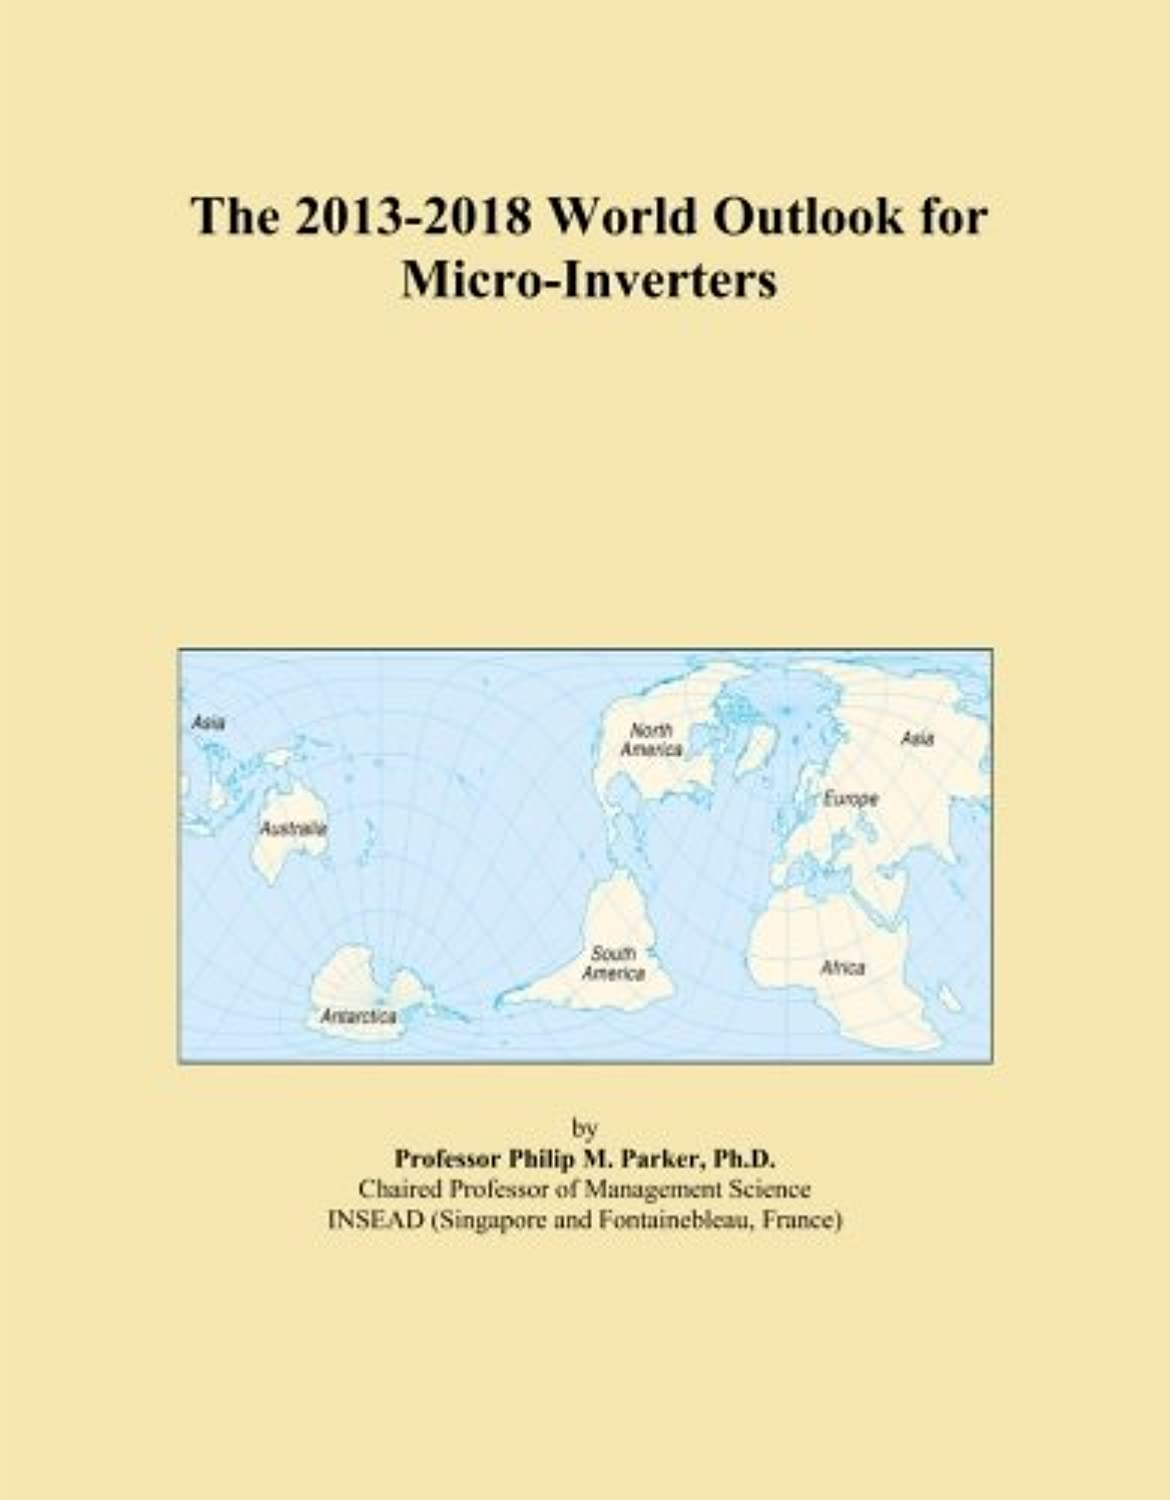 The 2013-2018 World Outlook for Micro-Inverters